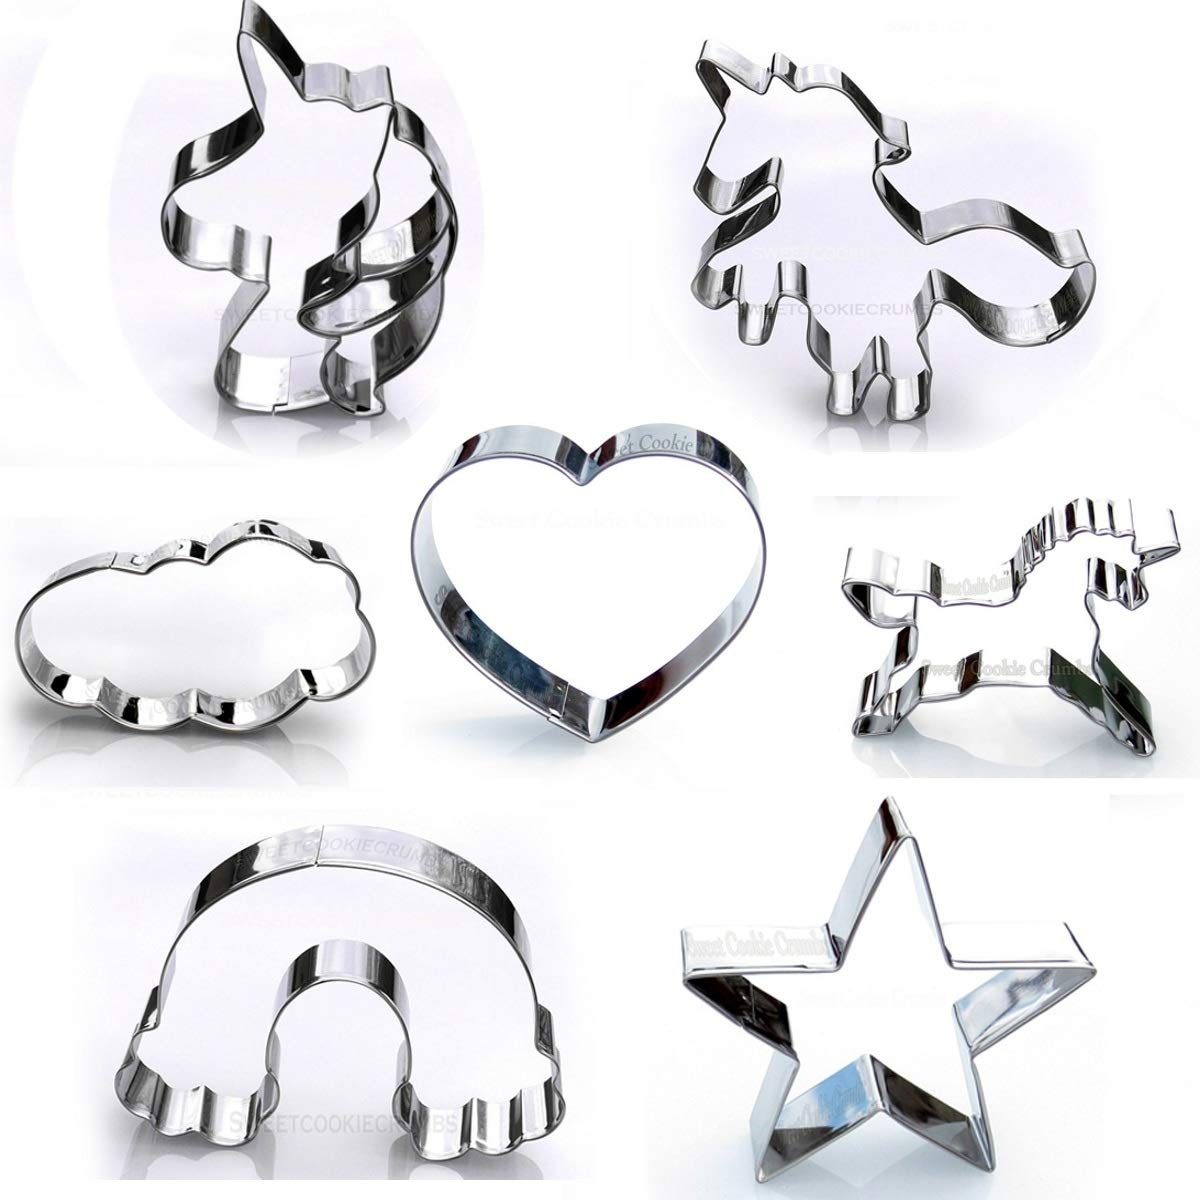 Unicorn Cookie Cutter Set, 7 Piece Party Pack, Stainless Steel